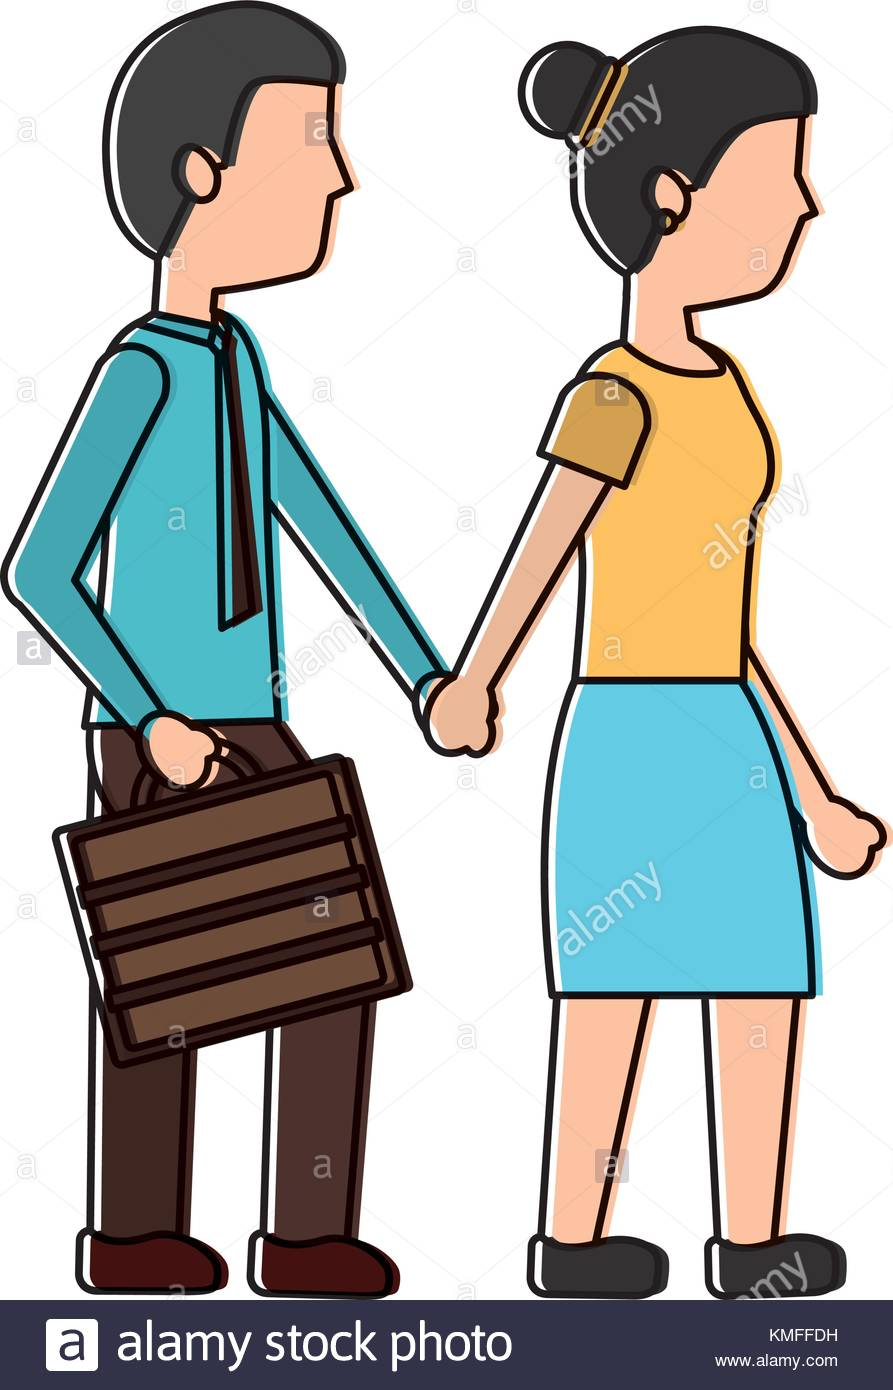 Two people walking together clipart clip black and white library Two People Walking Clipart & Free Clip Art Images #21836 ... clip black and white library